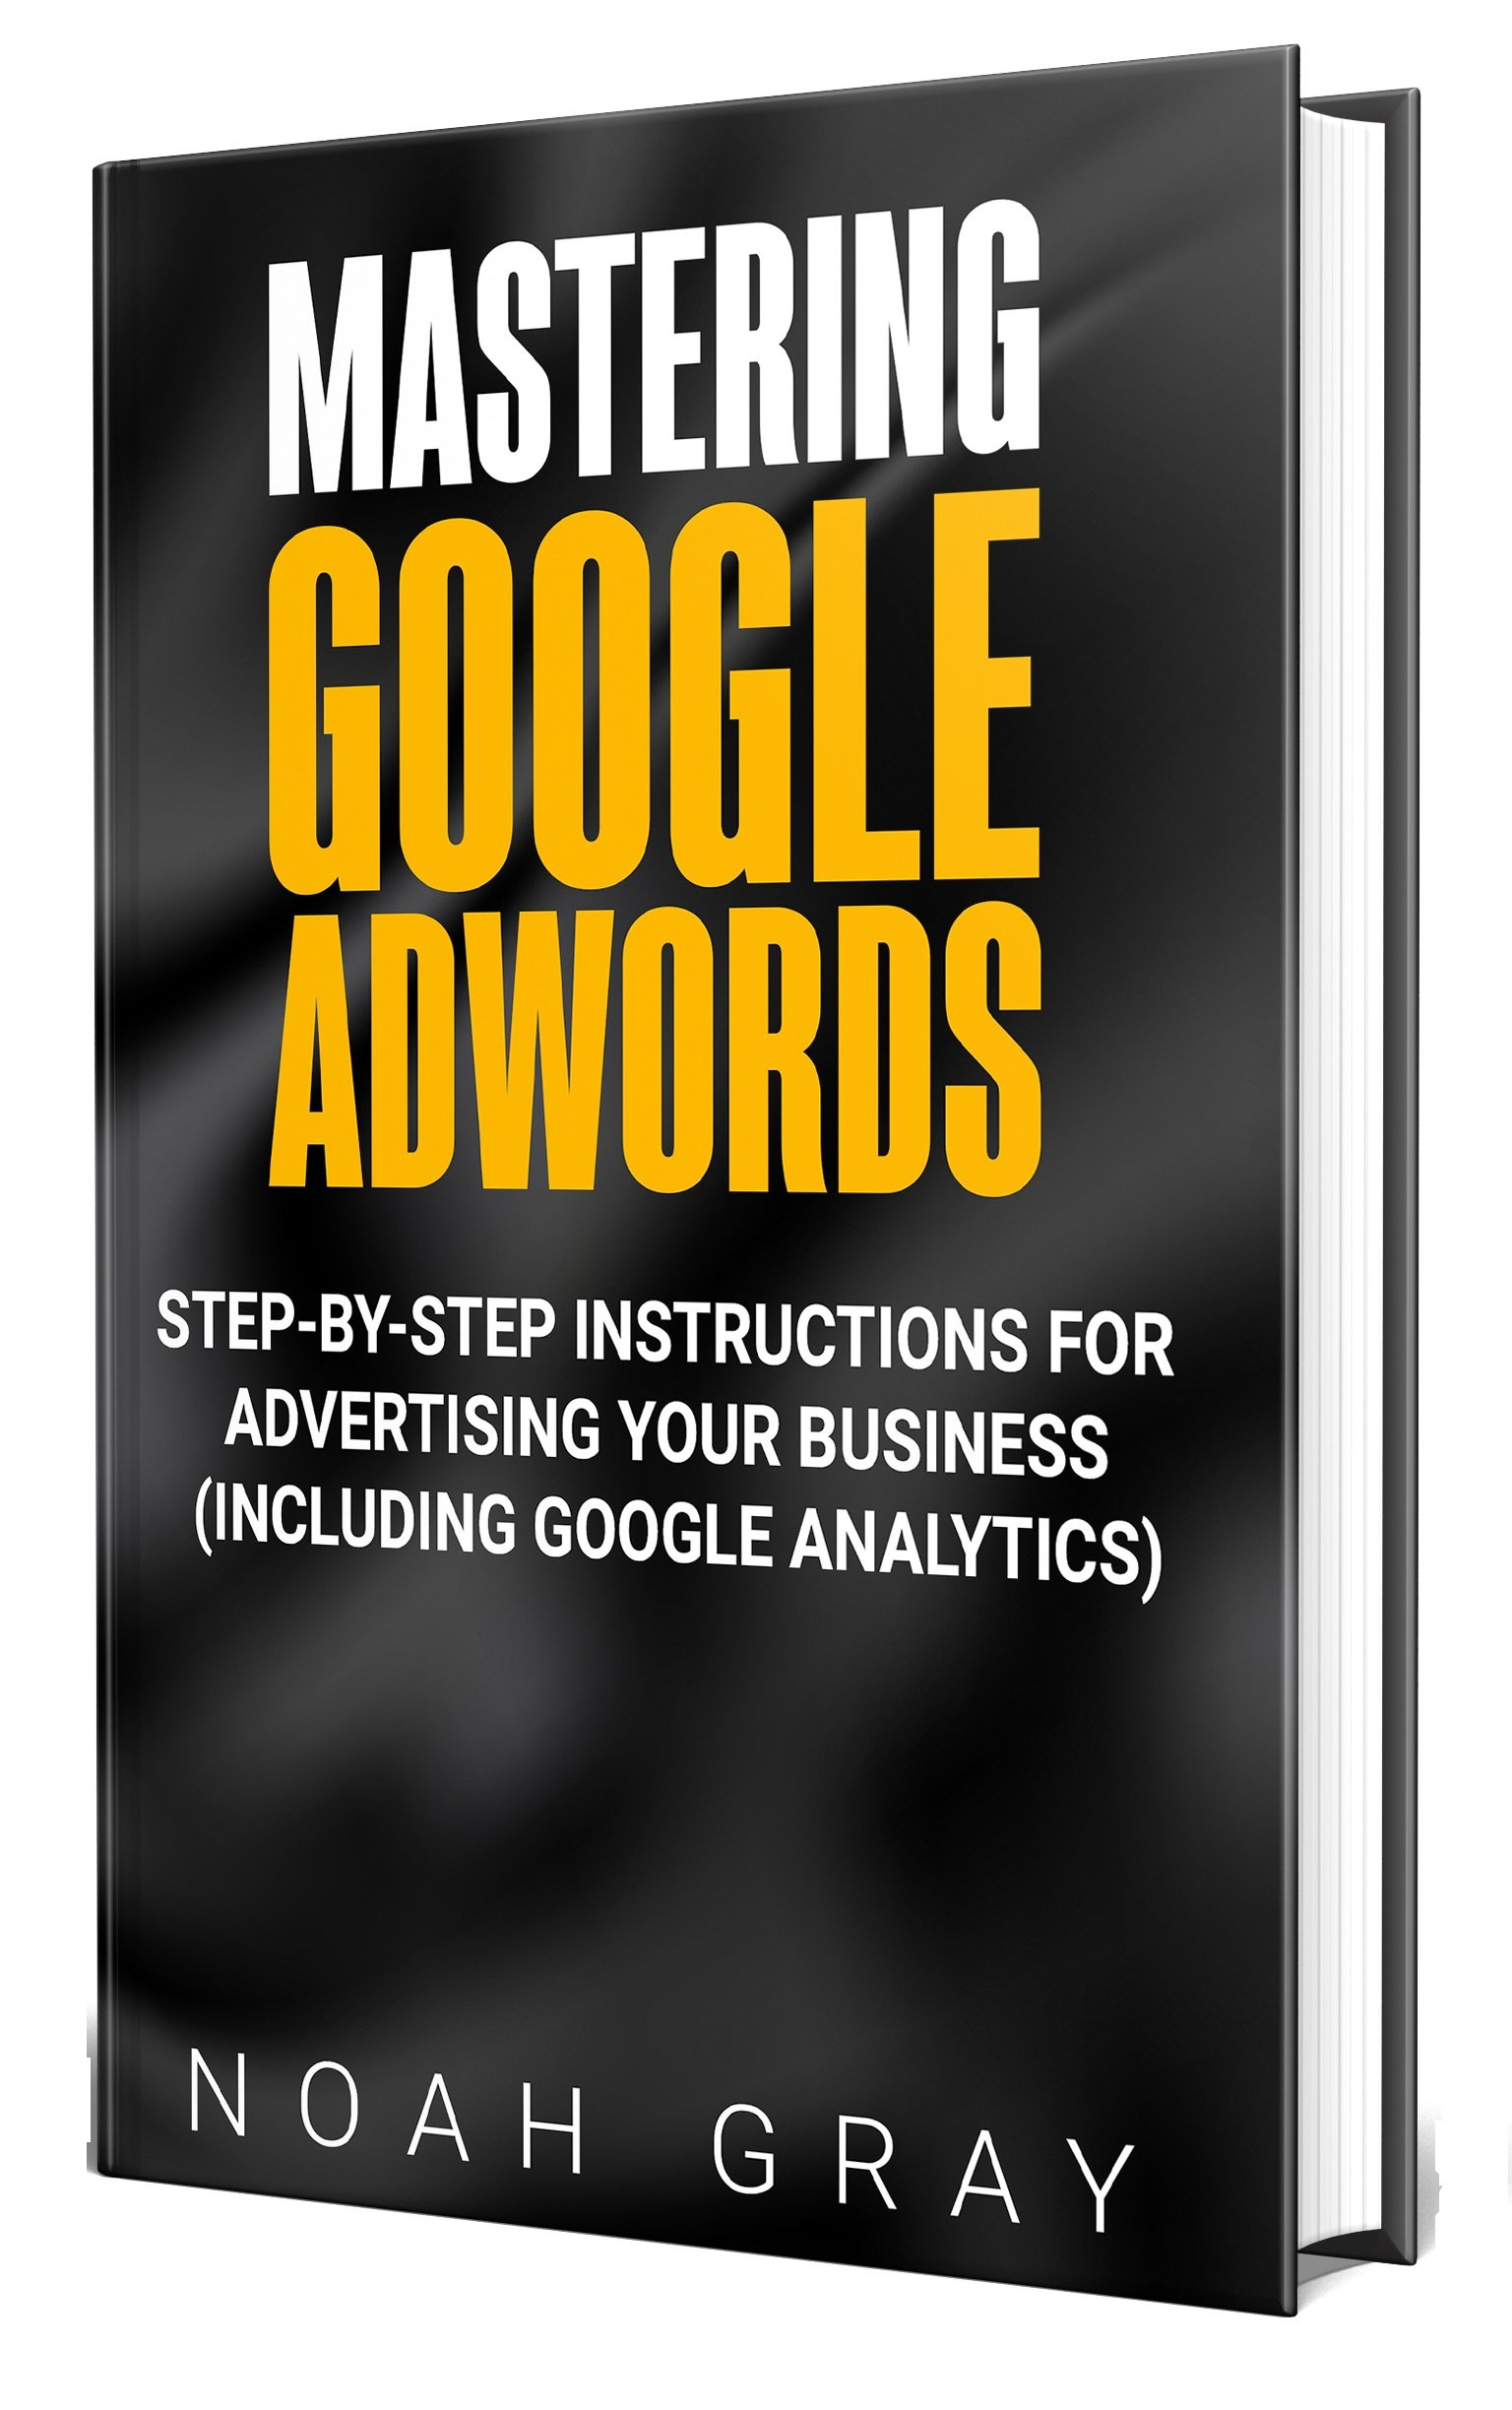 Image OfMastering Google Adwords 2020: Step-by-Step Instructions For Advertising Your Business (Including Google Analytics)